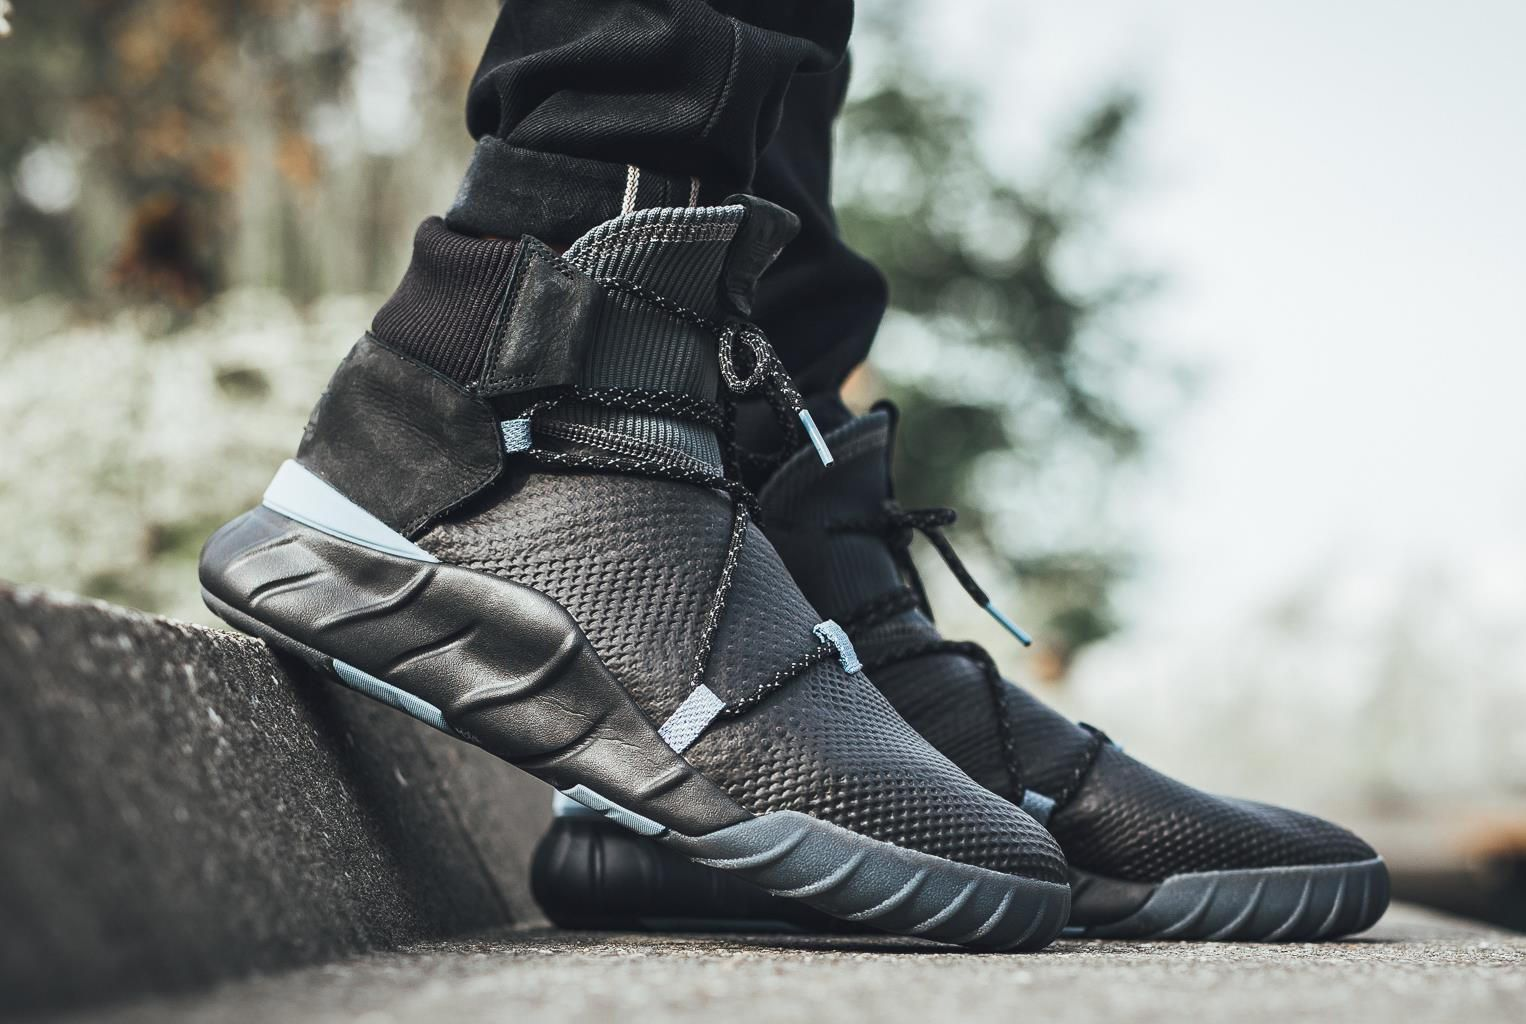 best sneakers d7326 fd2ab Core Black Coats The adidas Tubular X 2.0 Primeknit • KicksOnFire.com